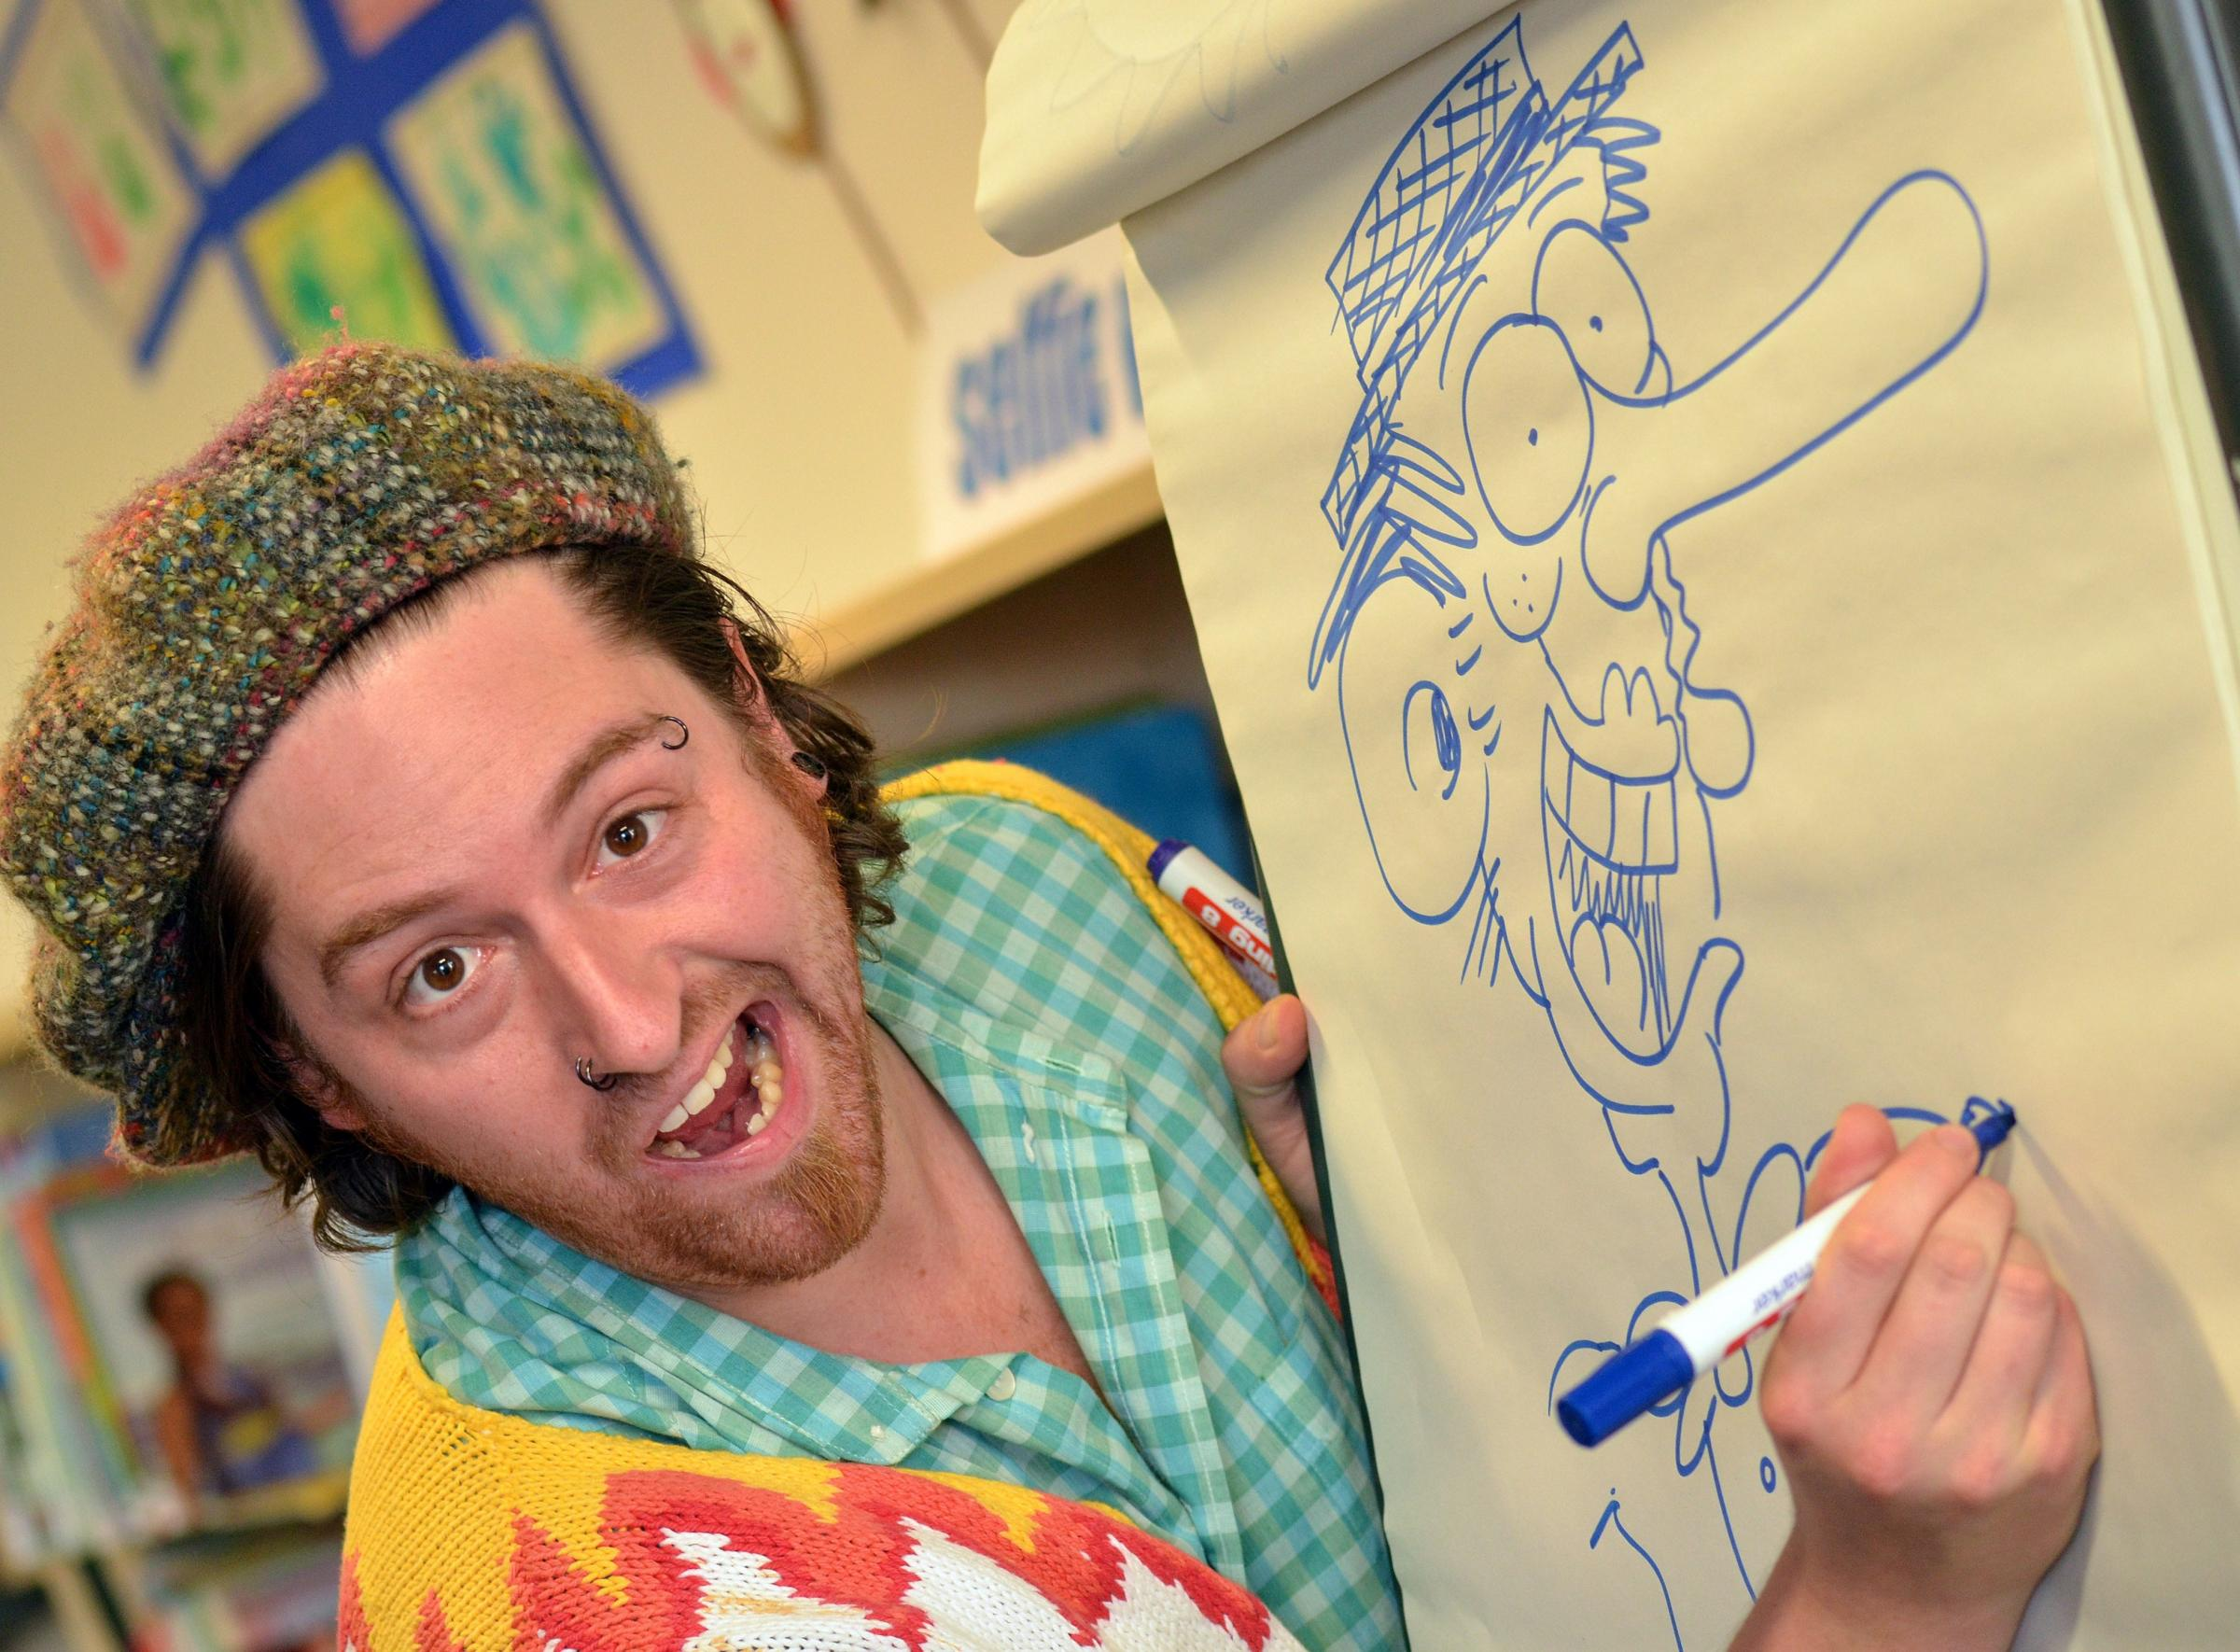 Cartoon artist Doctor Simpo at a comic book arts workshop at Bradford City Library..